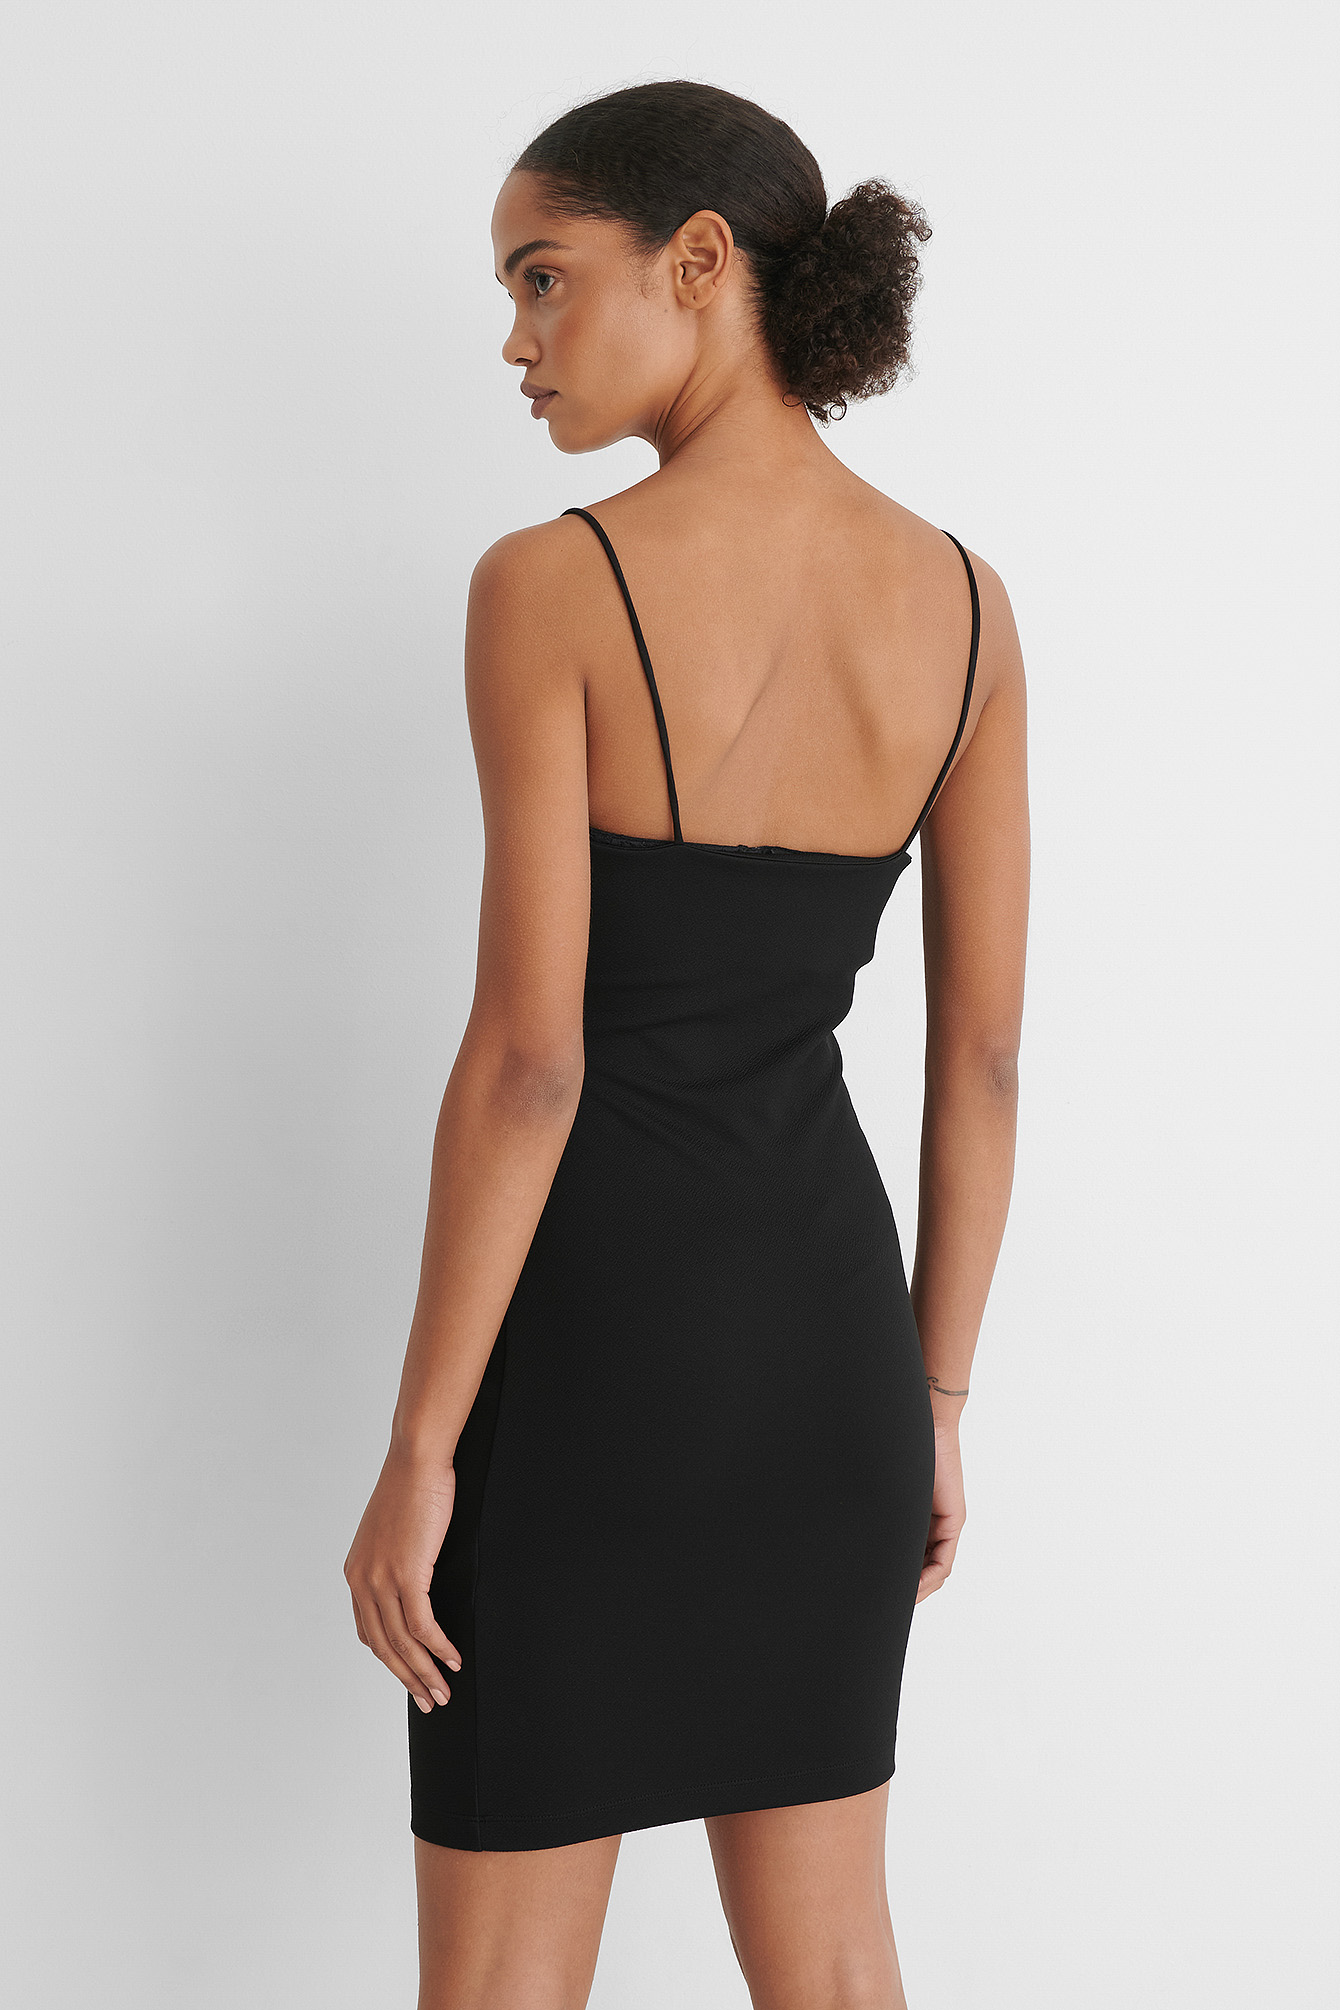 Black Rouched Asymmetric Strap Dress